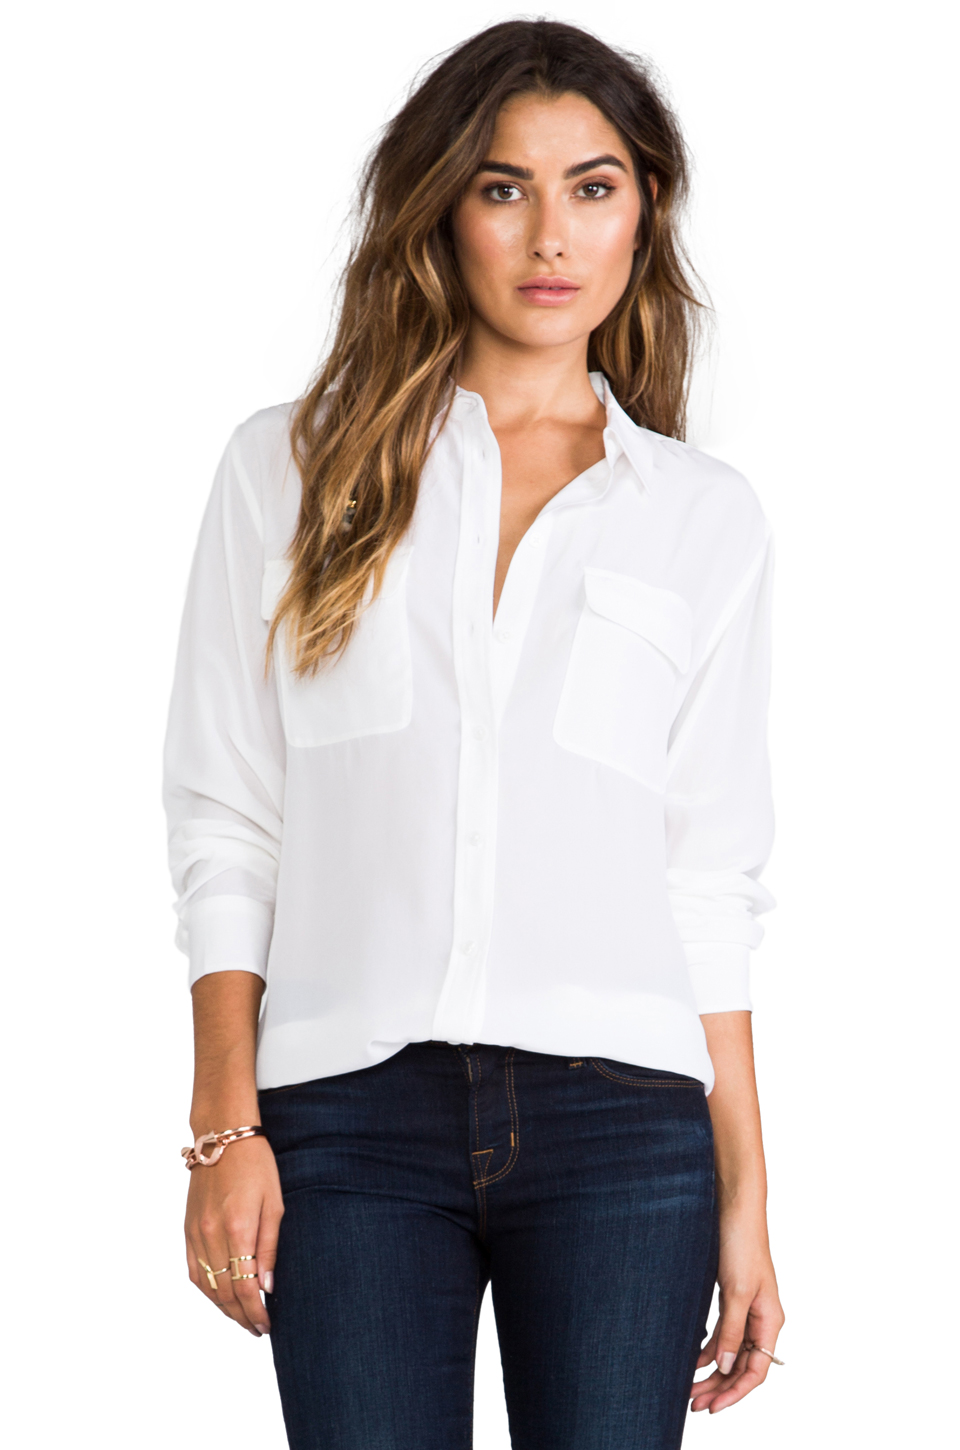 Equipment Signature Blouse in Bright White | REVOLVE